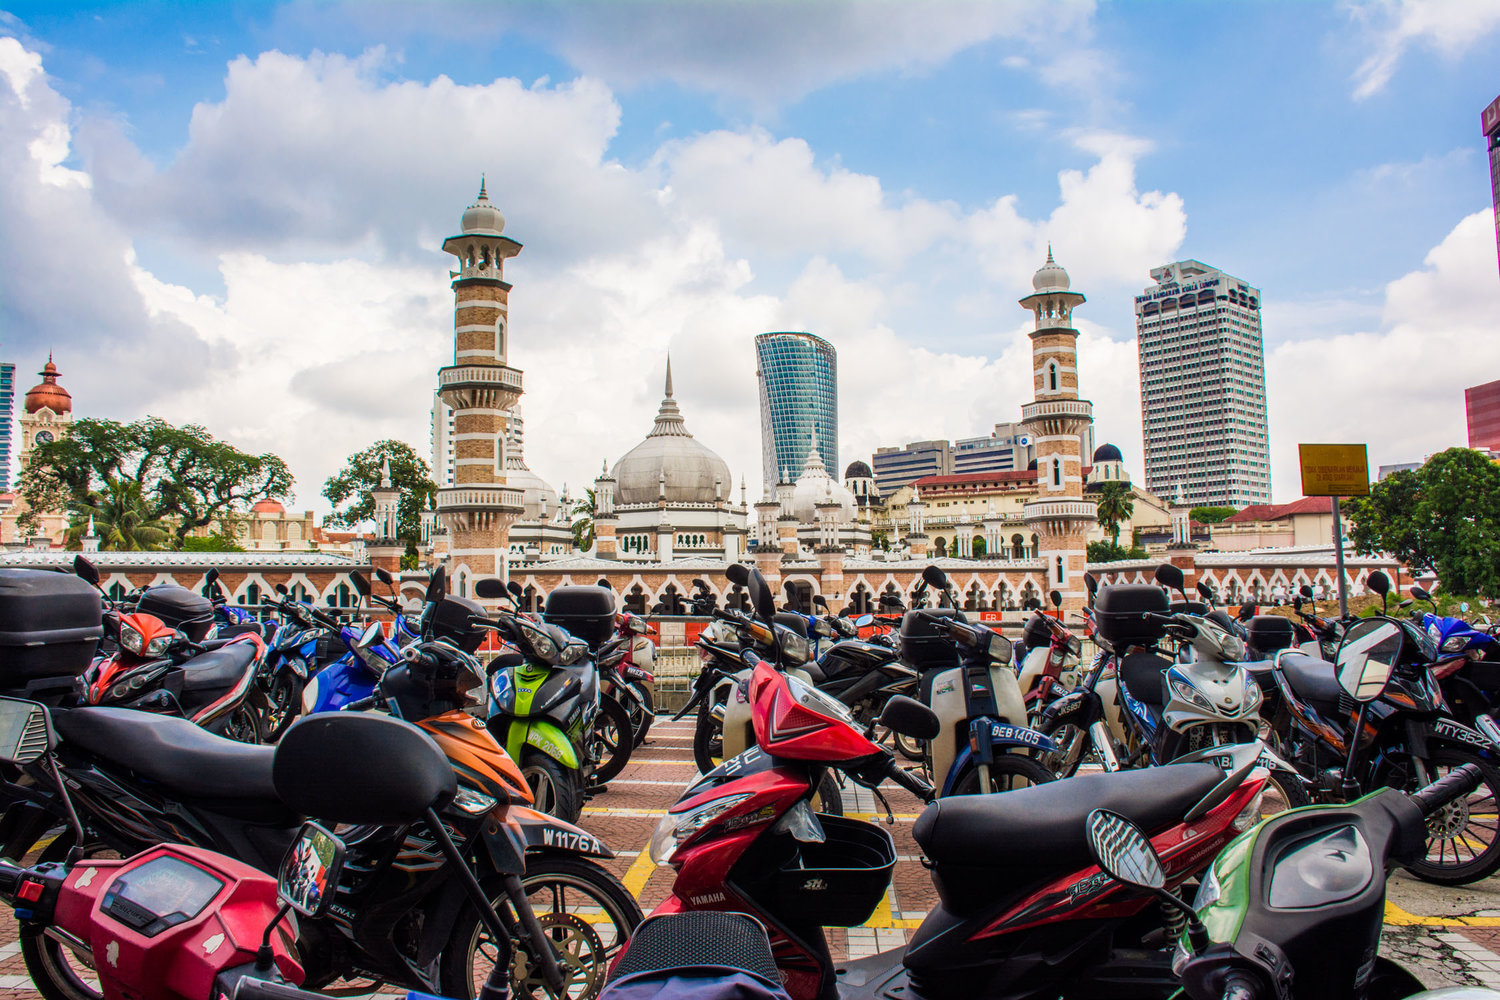 Motorcycle license age to lower to 14 years in Malaysia?